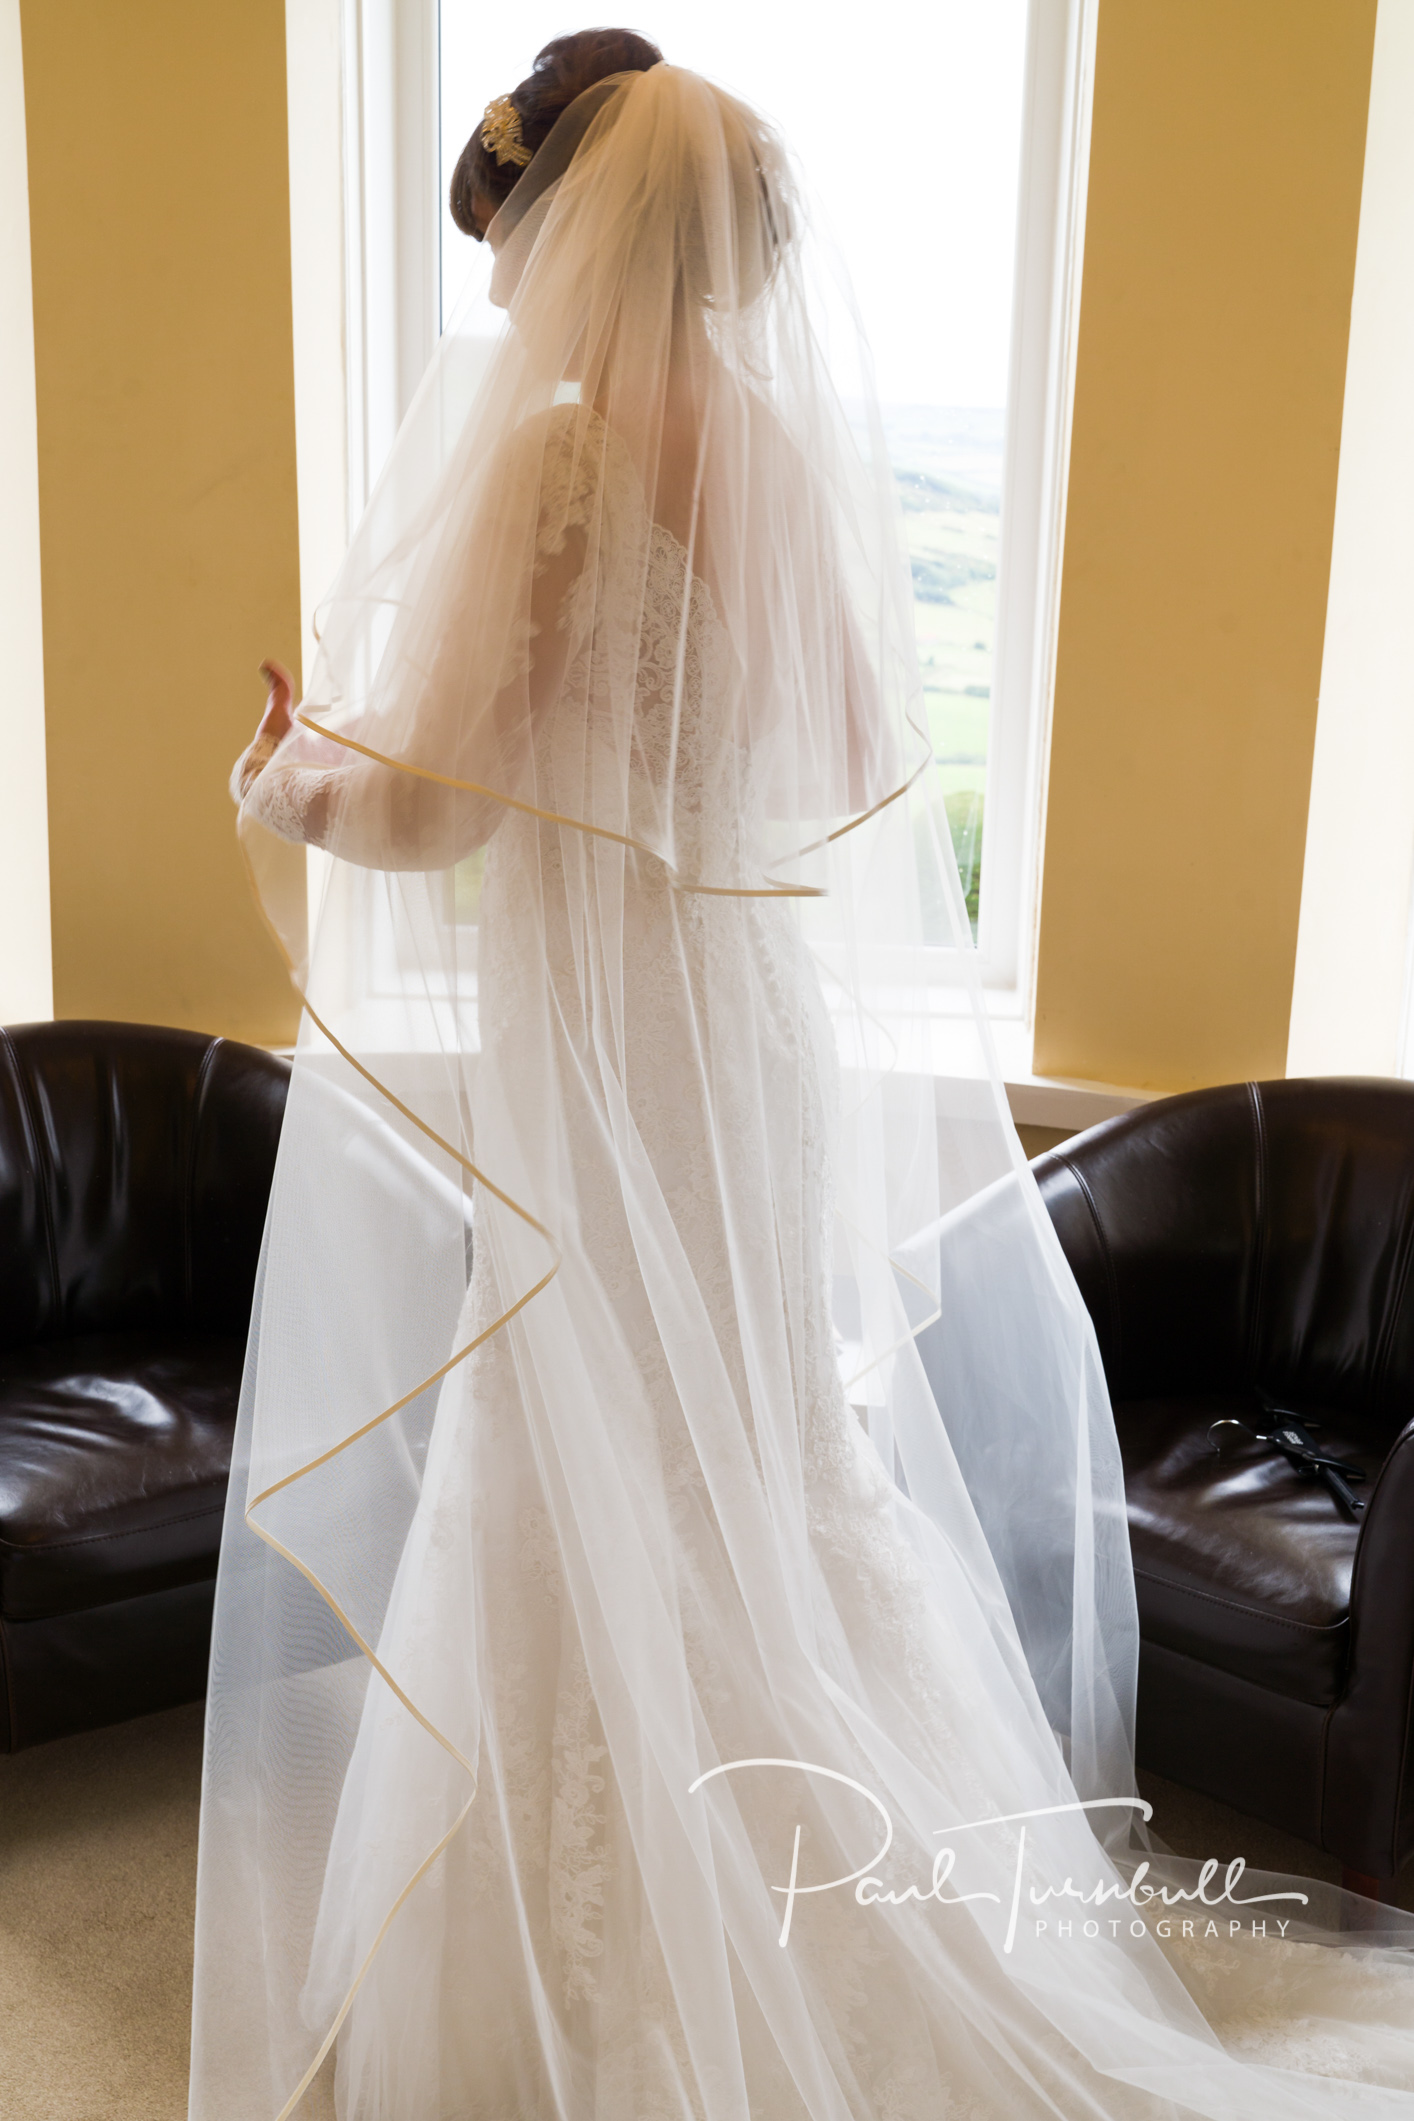 Bride getting to grips with the dress at Raven Hall, Ravenscar